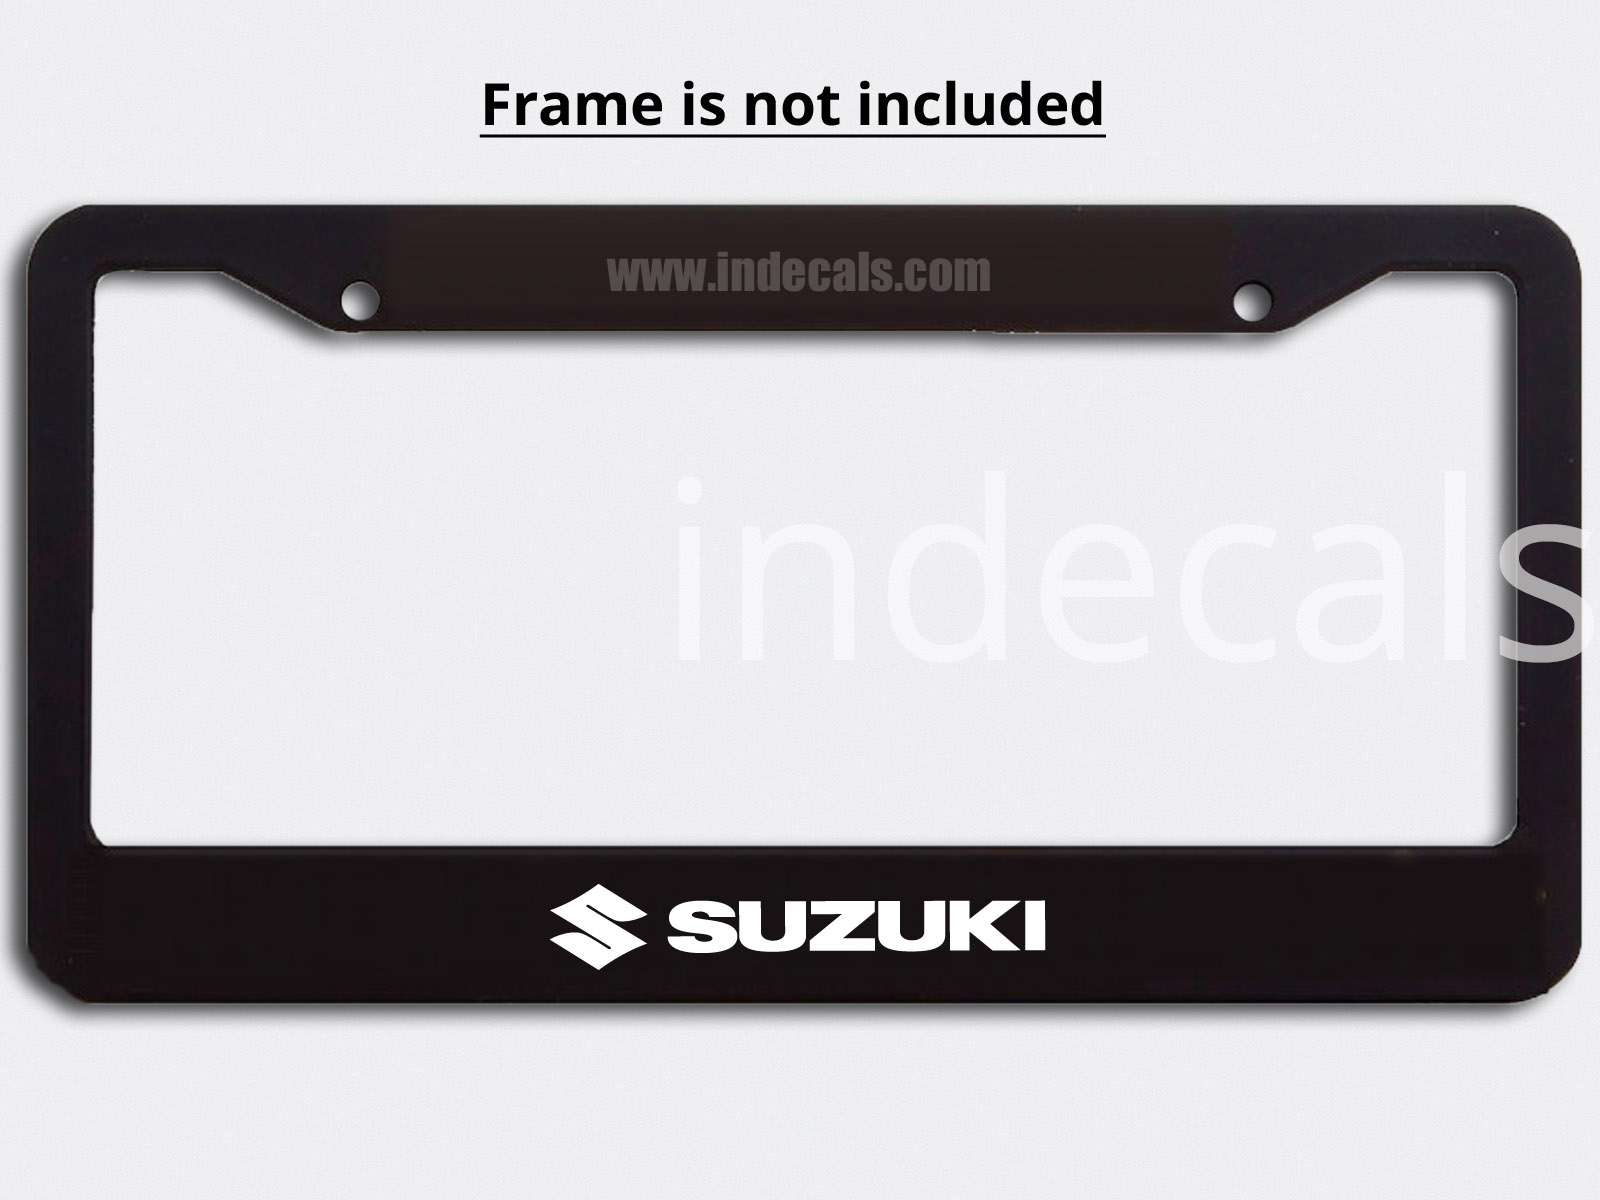 3 x Suzuki Stickers for Plate Frame - White